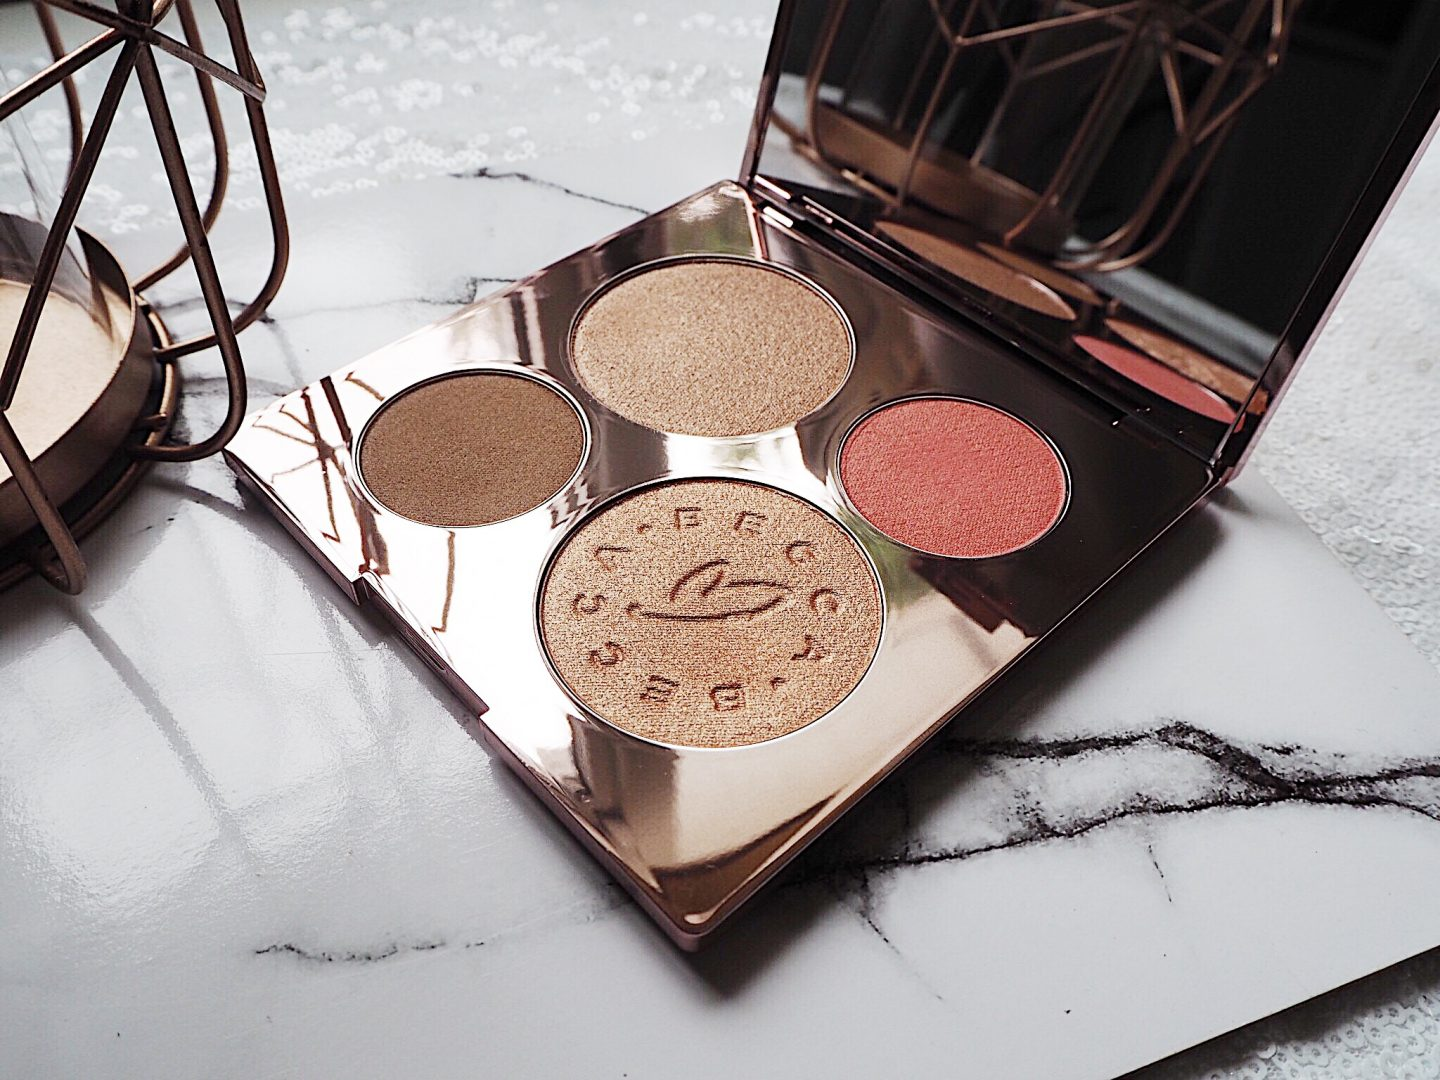 Becca X Chrissy Teigan Glow Face Palette